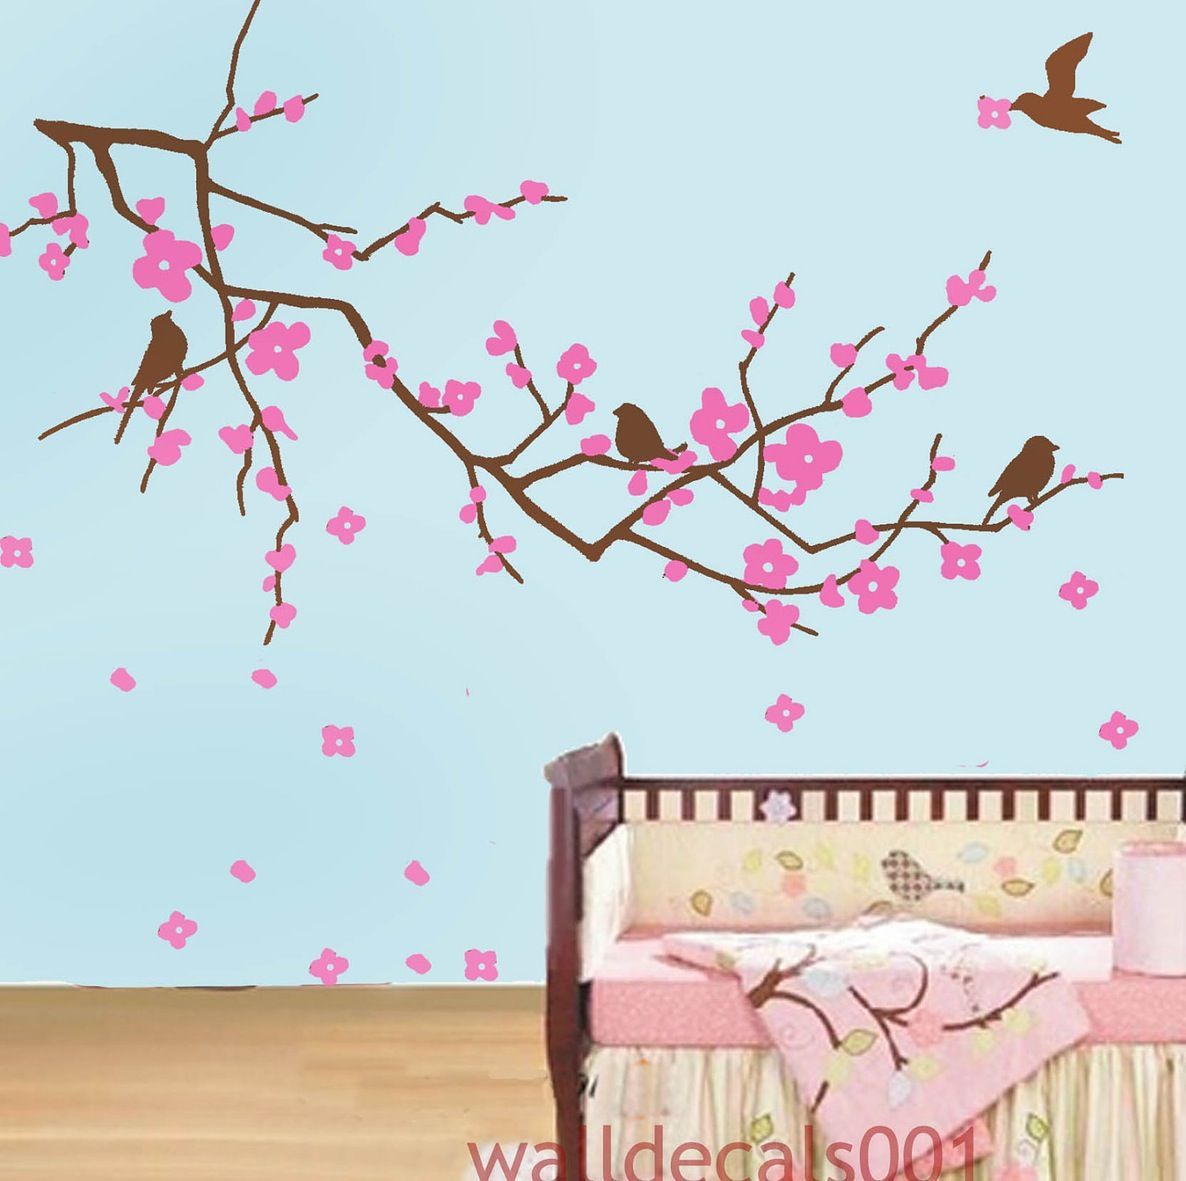 wallpaper wall appliques cherry tree with decorating wall with wallpaper wall appliques cherry tree with decorating wall with blue wall and laminate flooring ideas